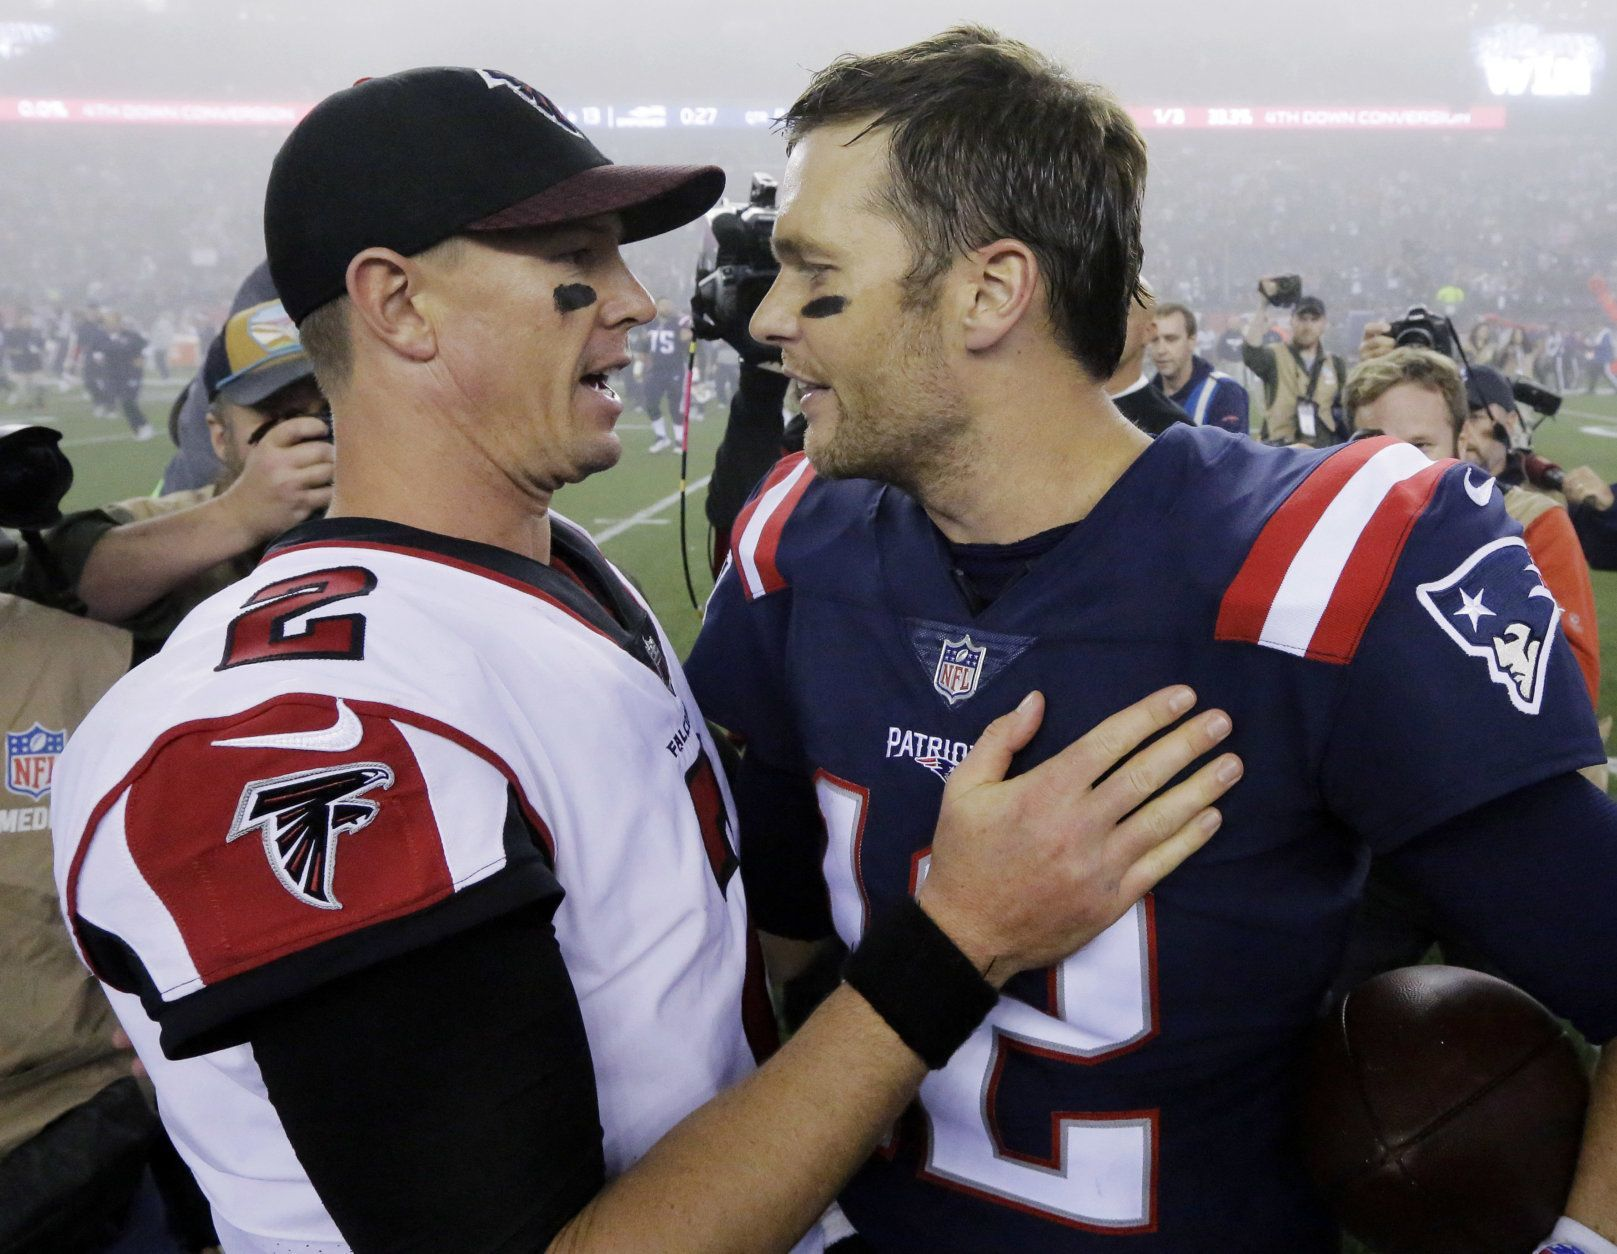 <p><strong>Super Bowl LIV</strong></p> <p>Falcons over Patriots</p>